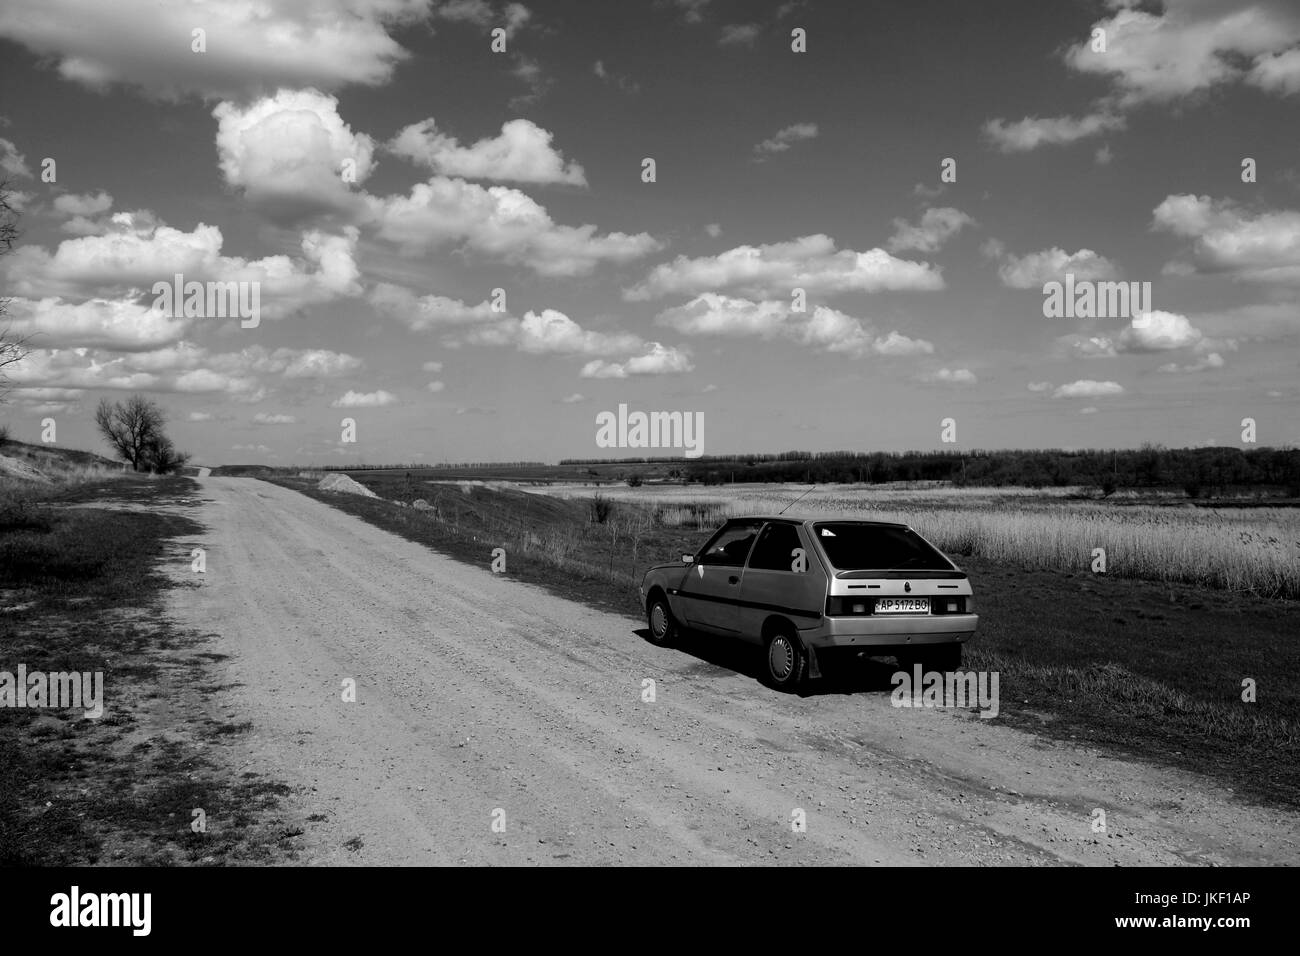 Off-road travelling. - Stock Image